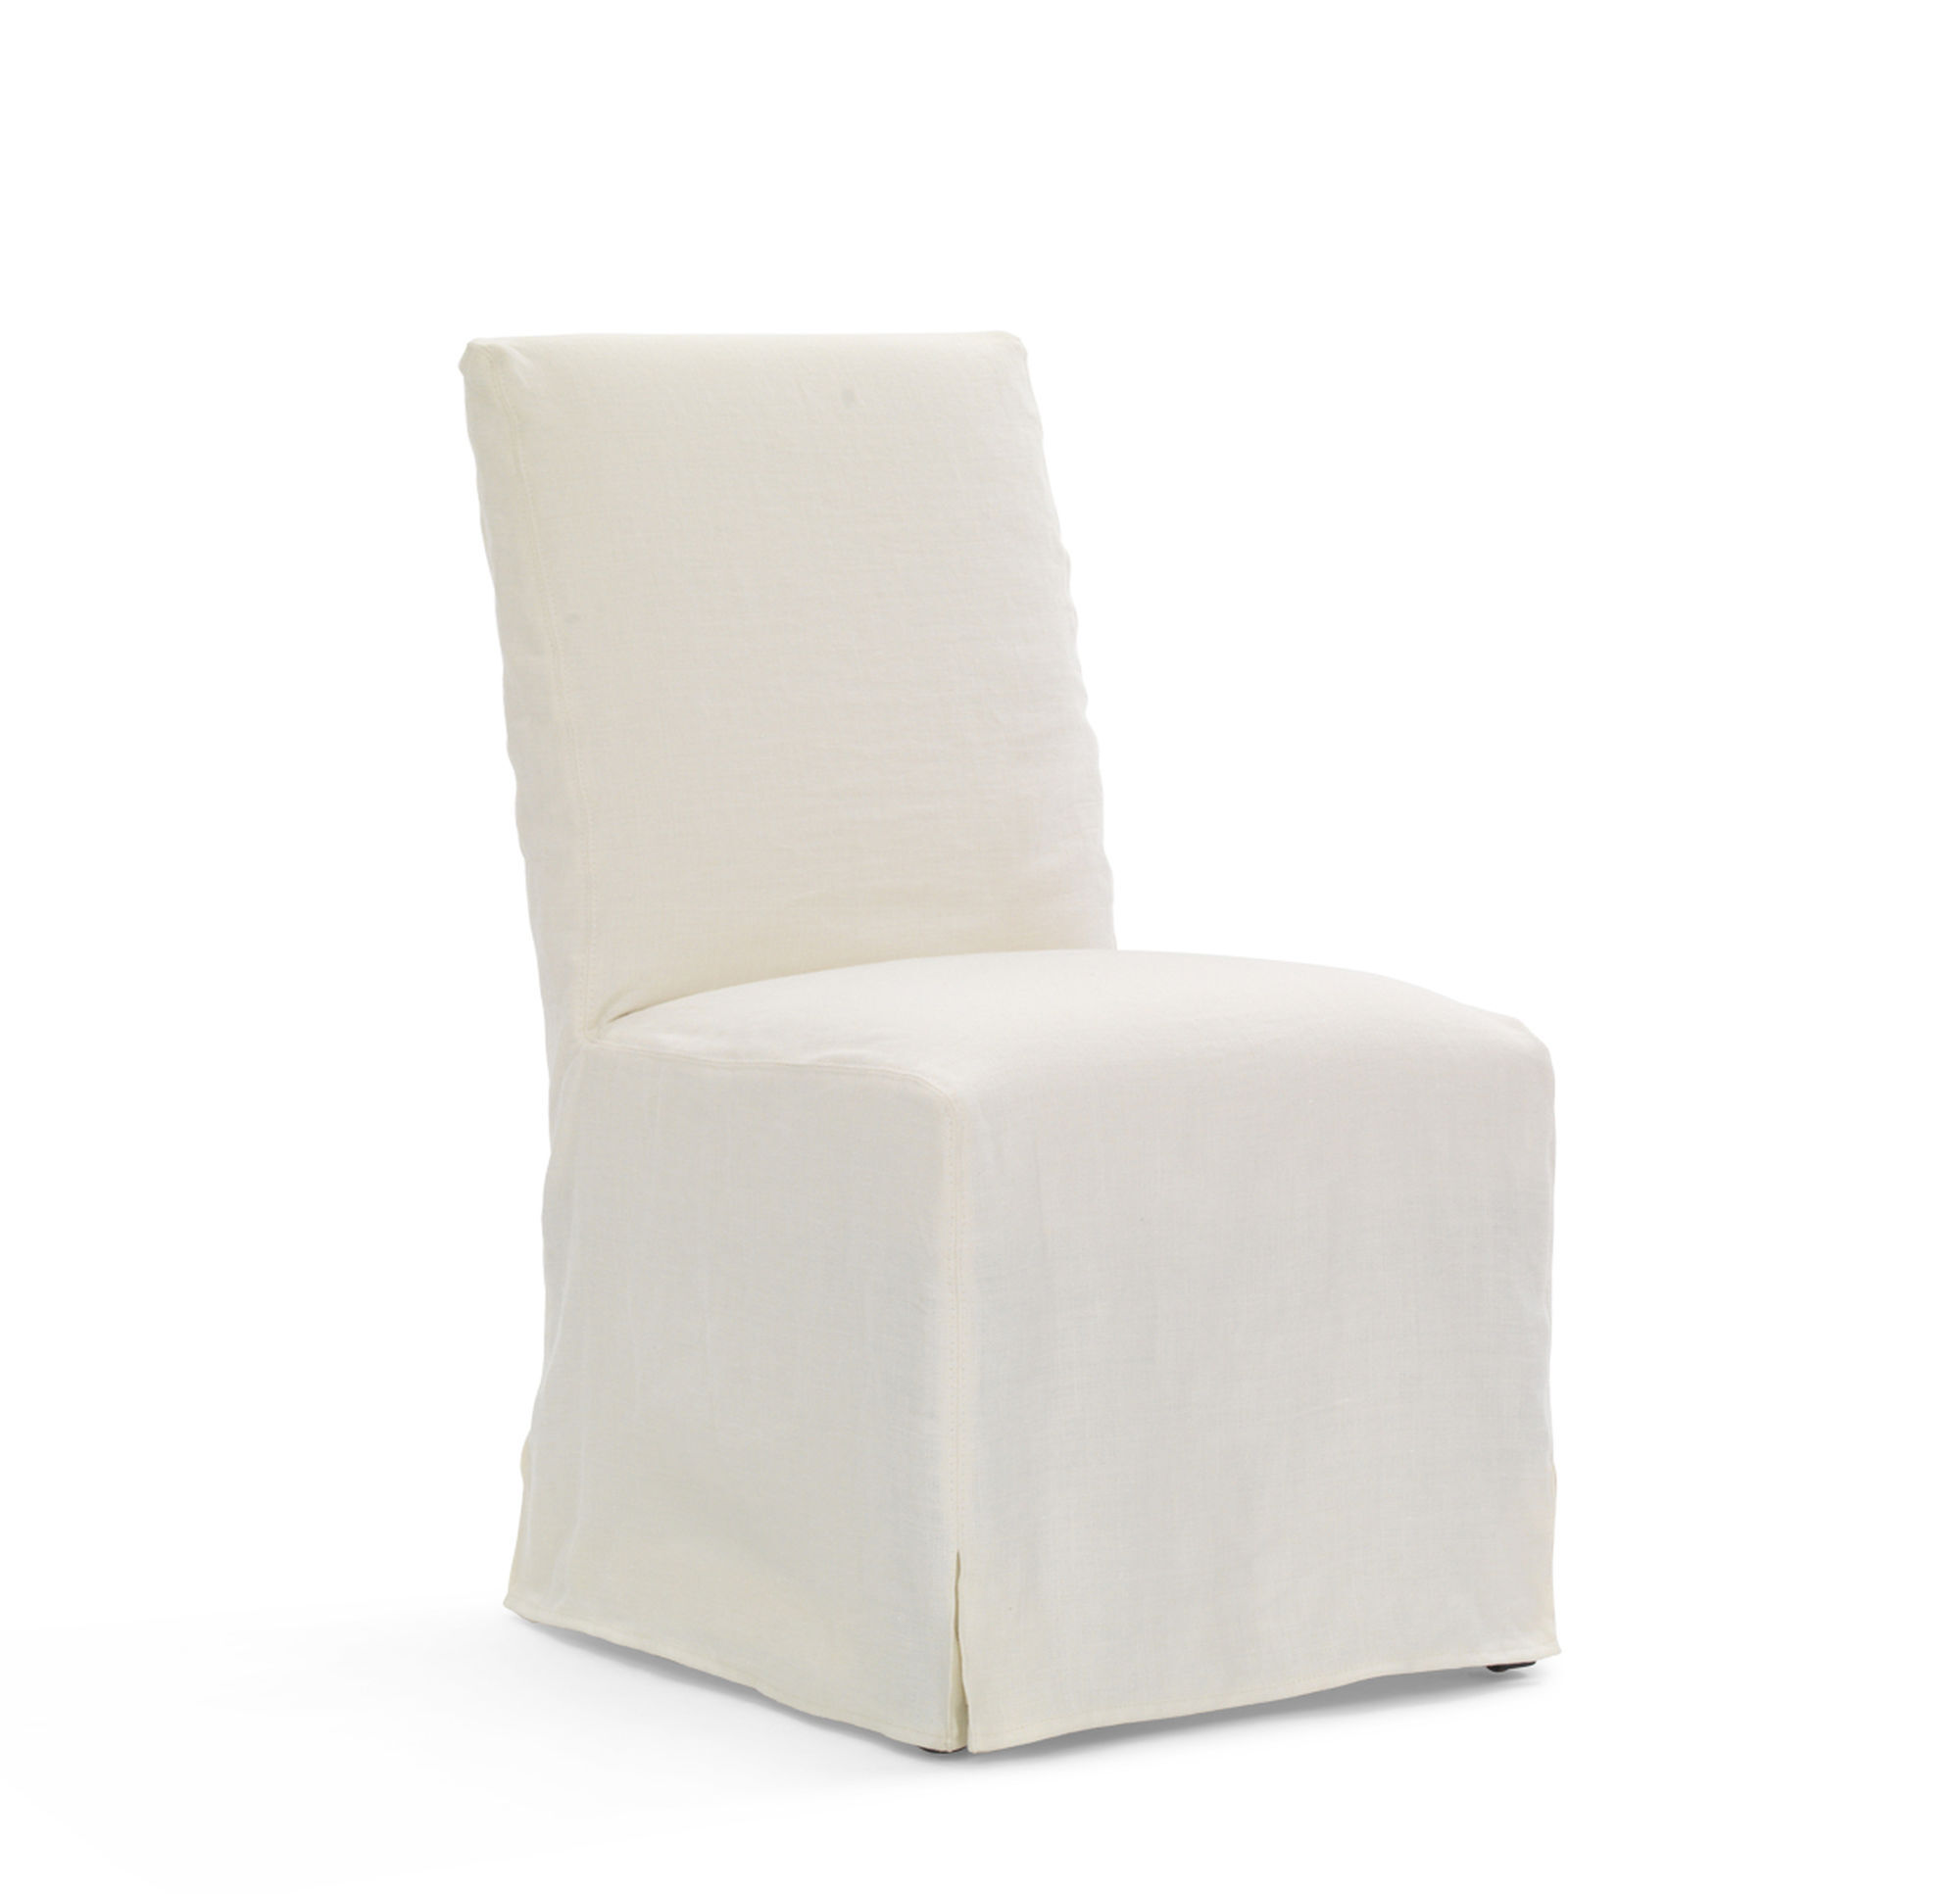 Fullsize Of Dining Chair Slipcovers